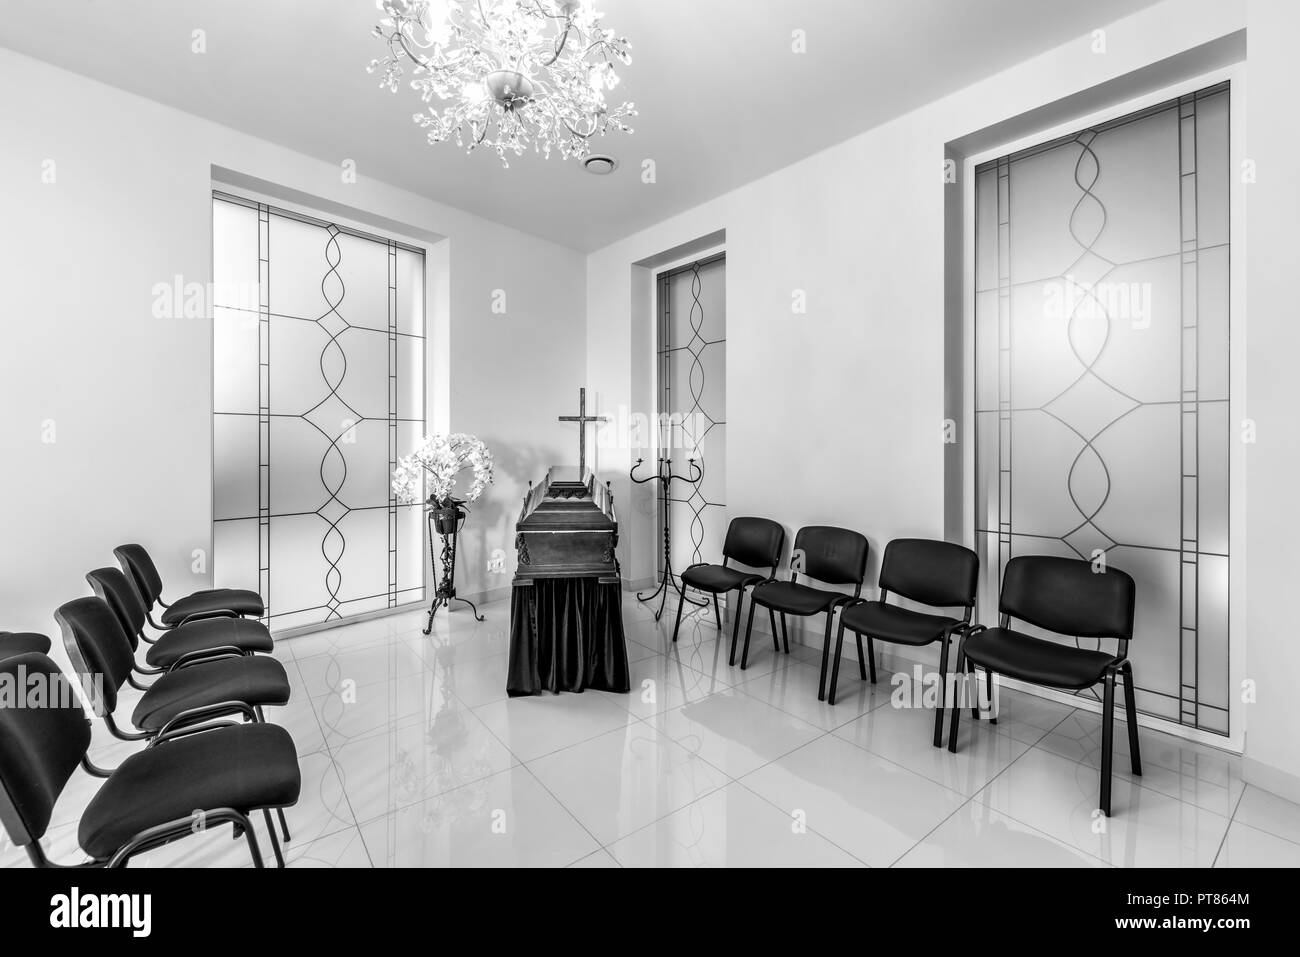 Funeral Home Interior High Resolution Stock Photography And Images Alamy